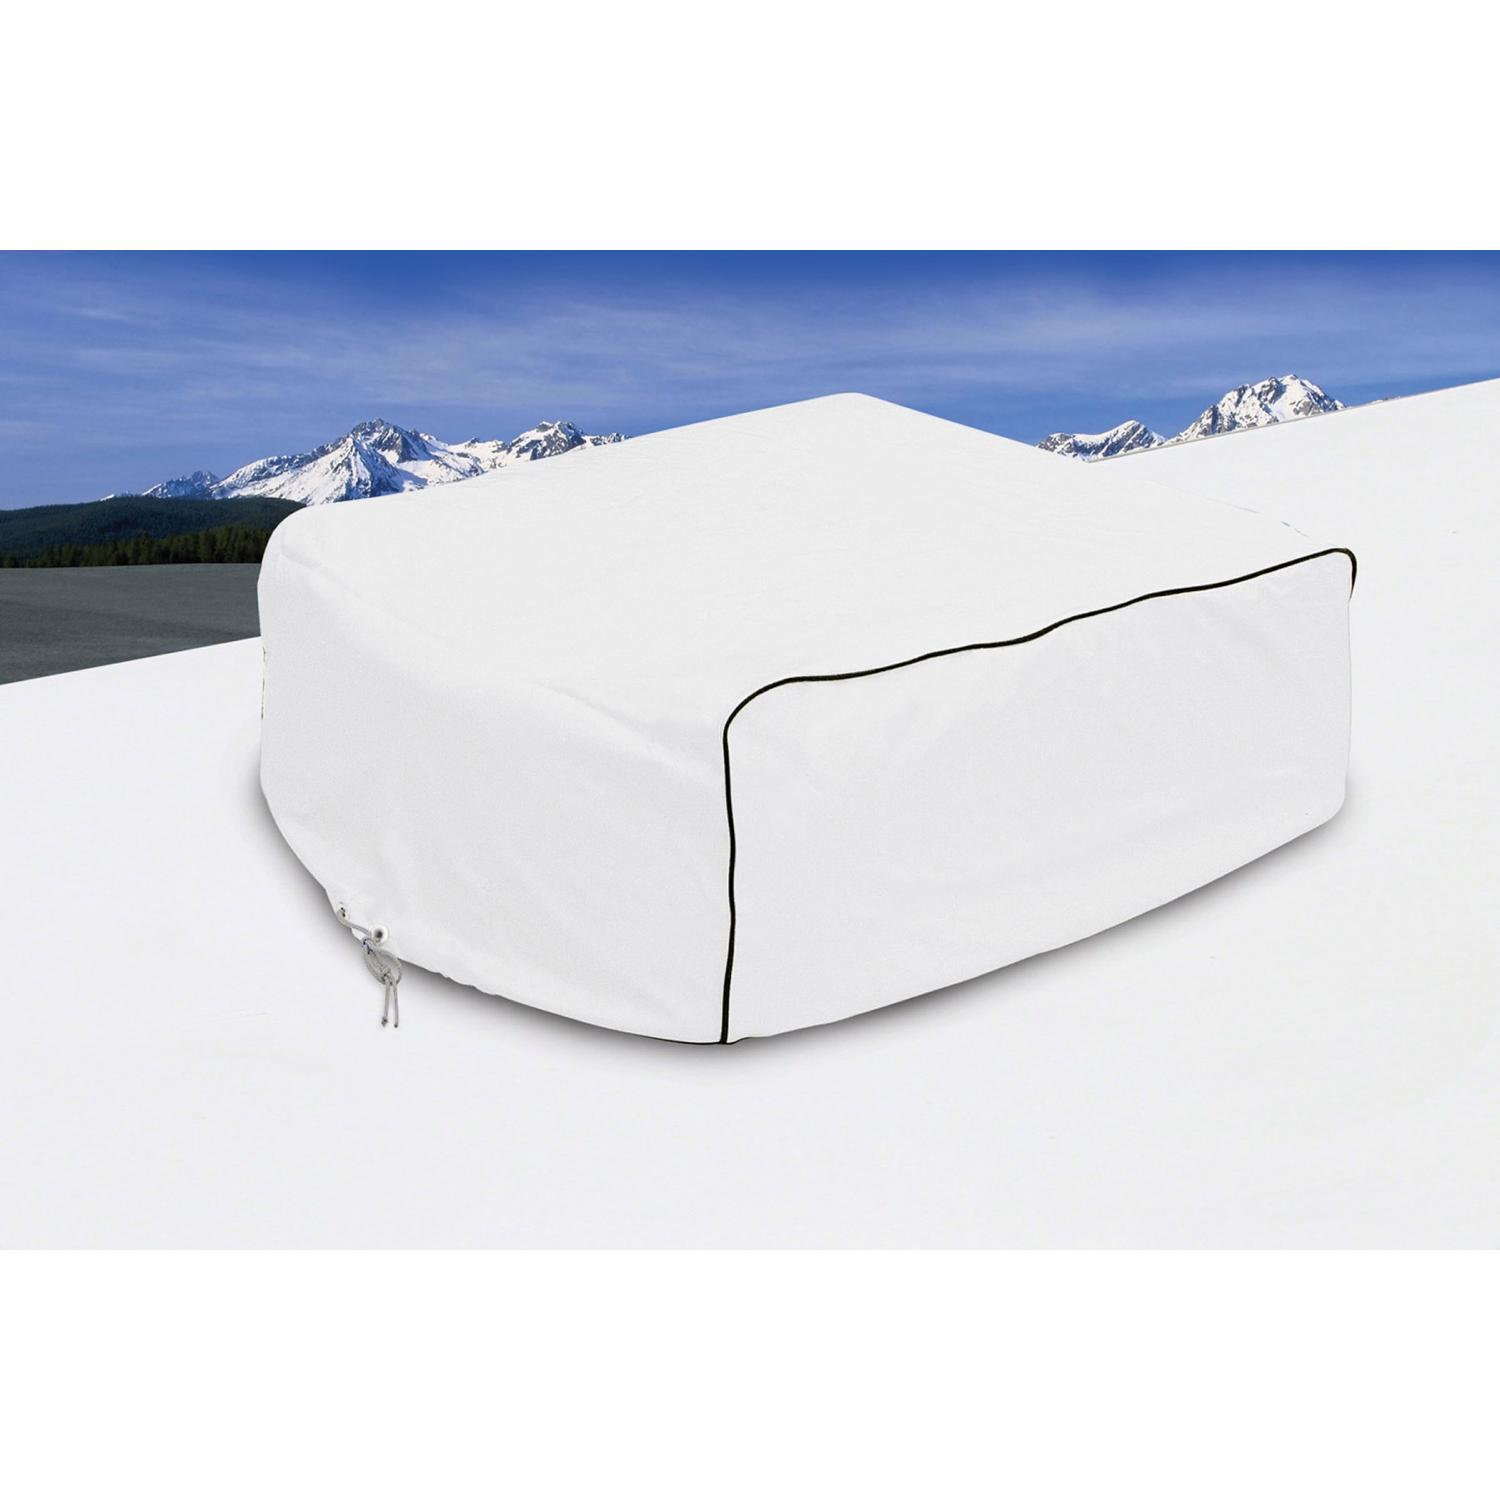 Classic Accessories RV A/C Cover - White - Model 1 1461045